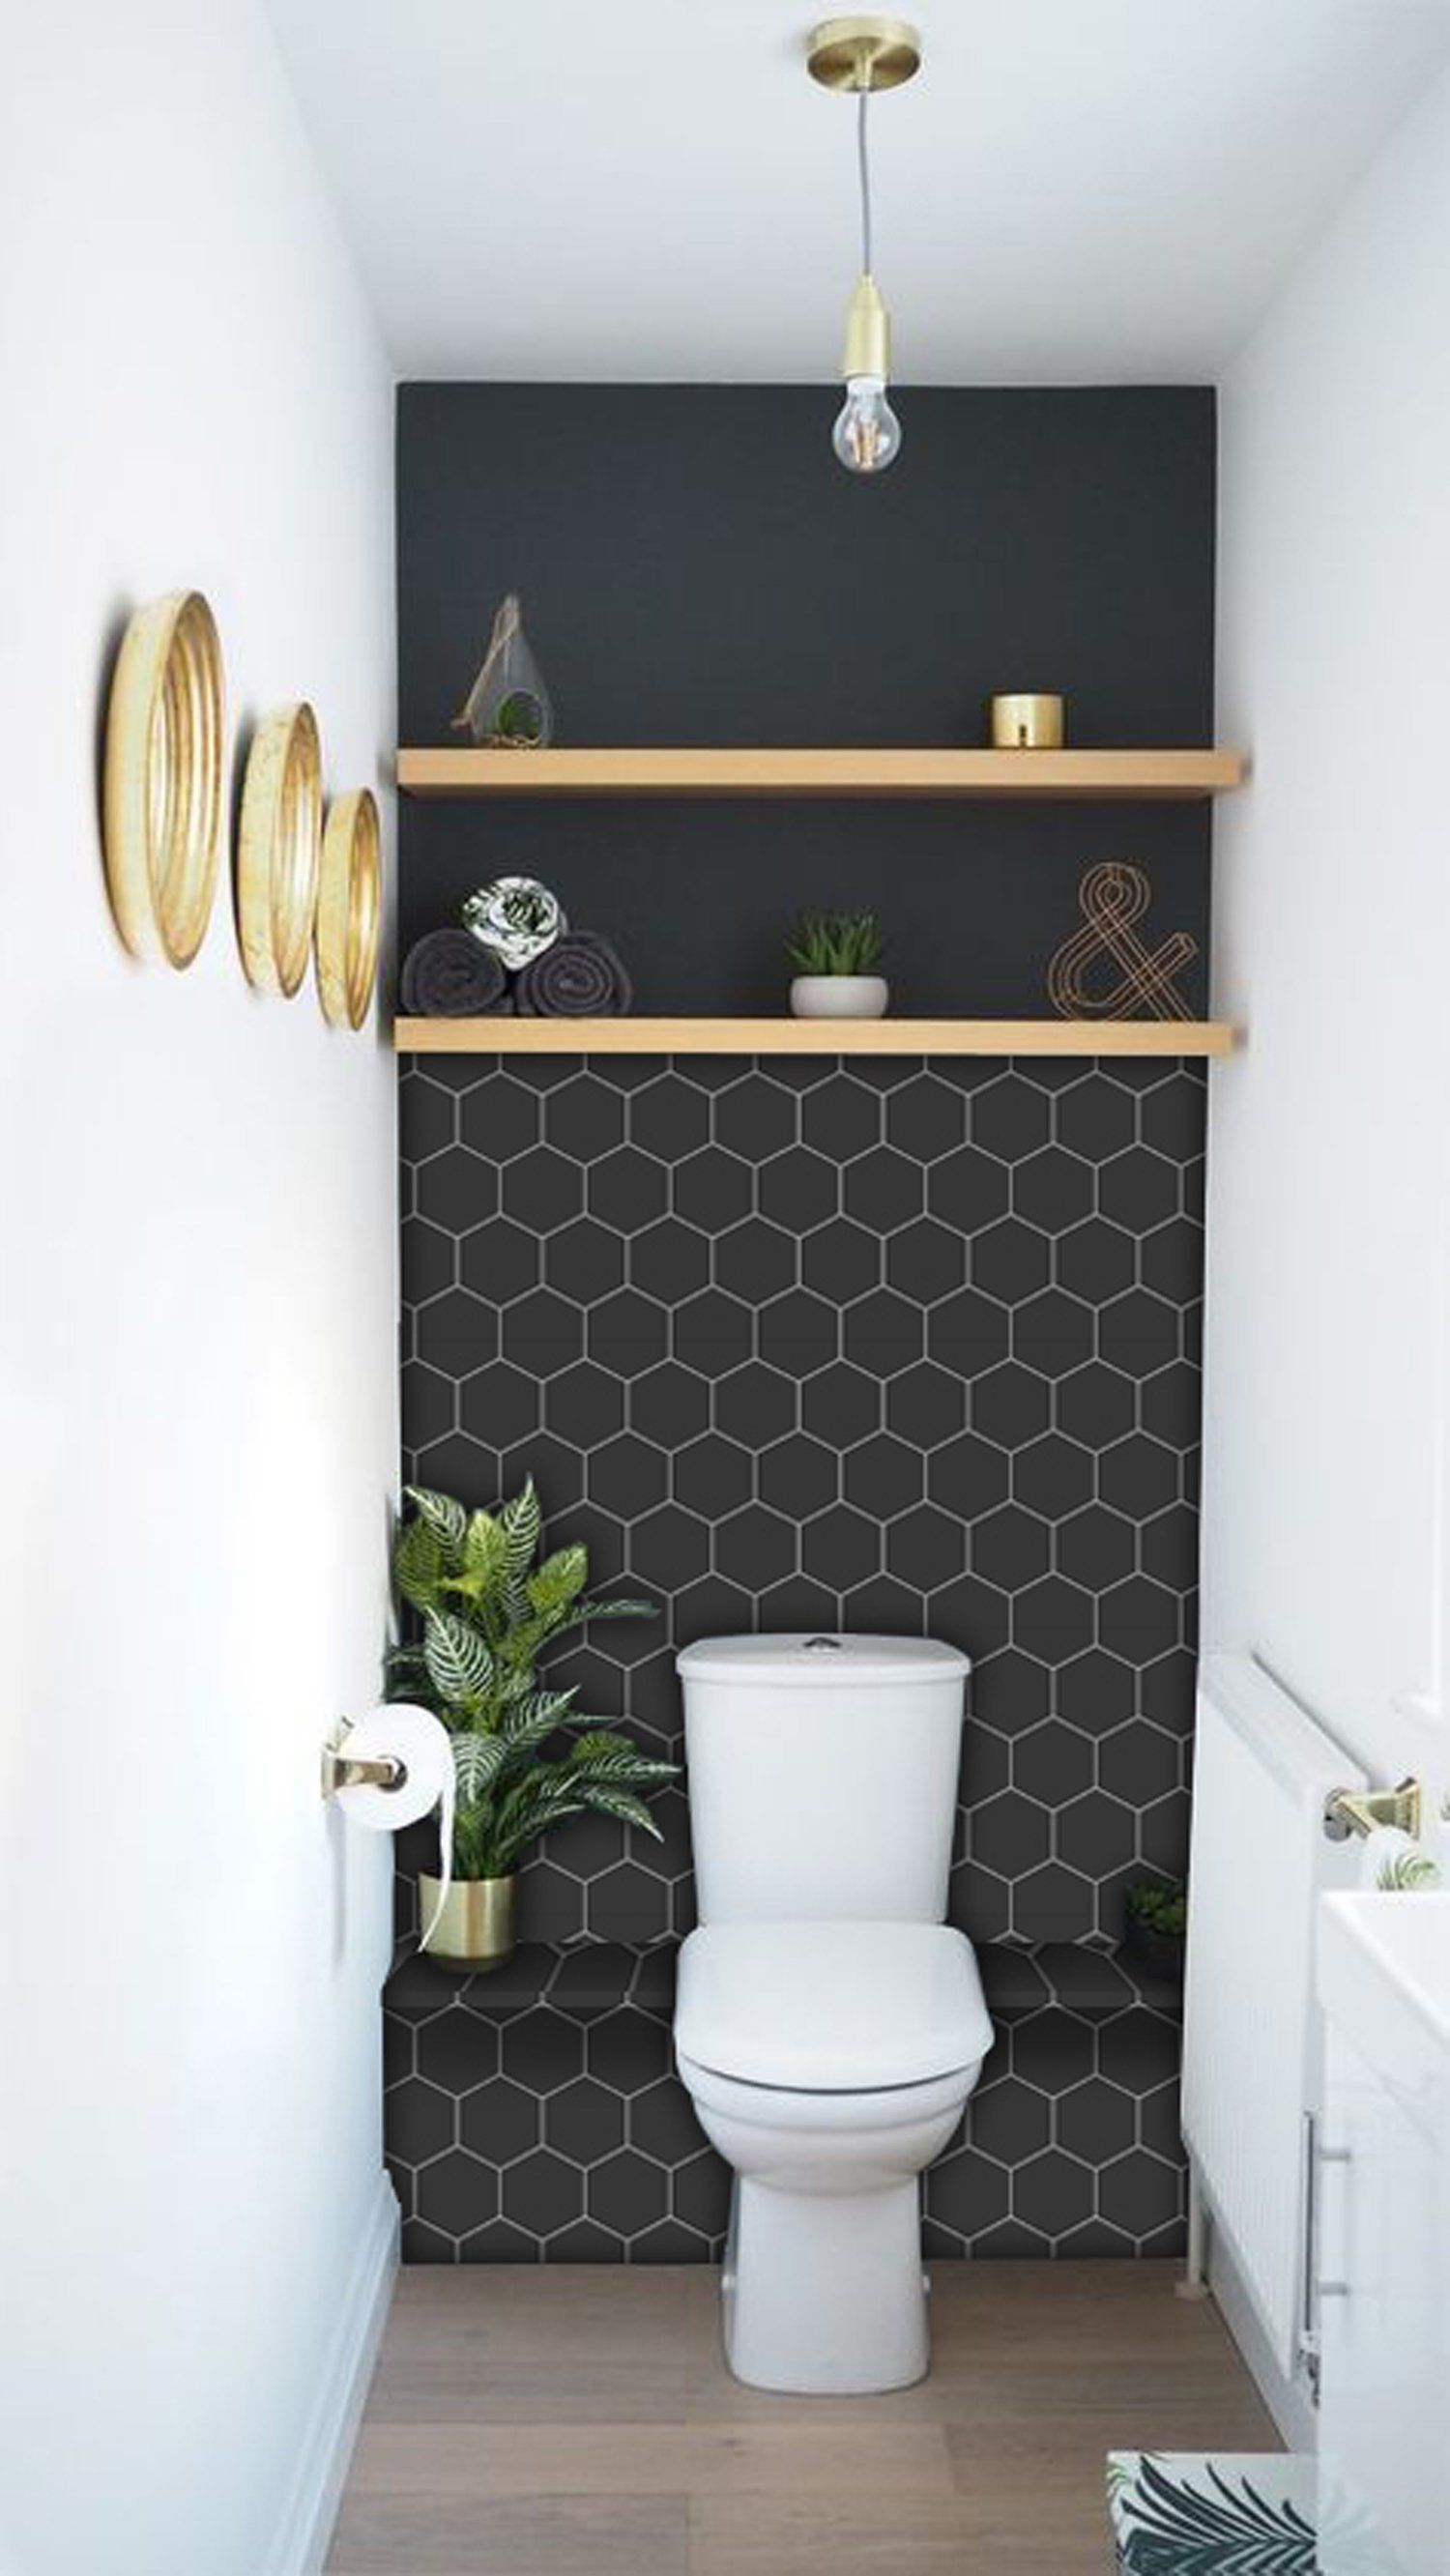 Kitchen and Bathroom Splashback - Removable Vinyl Wallpaper - Hexa Black - Peel & Stick